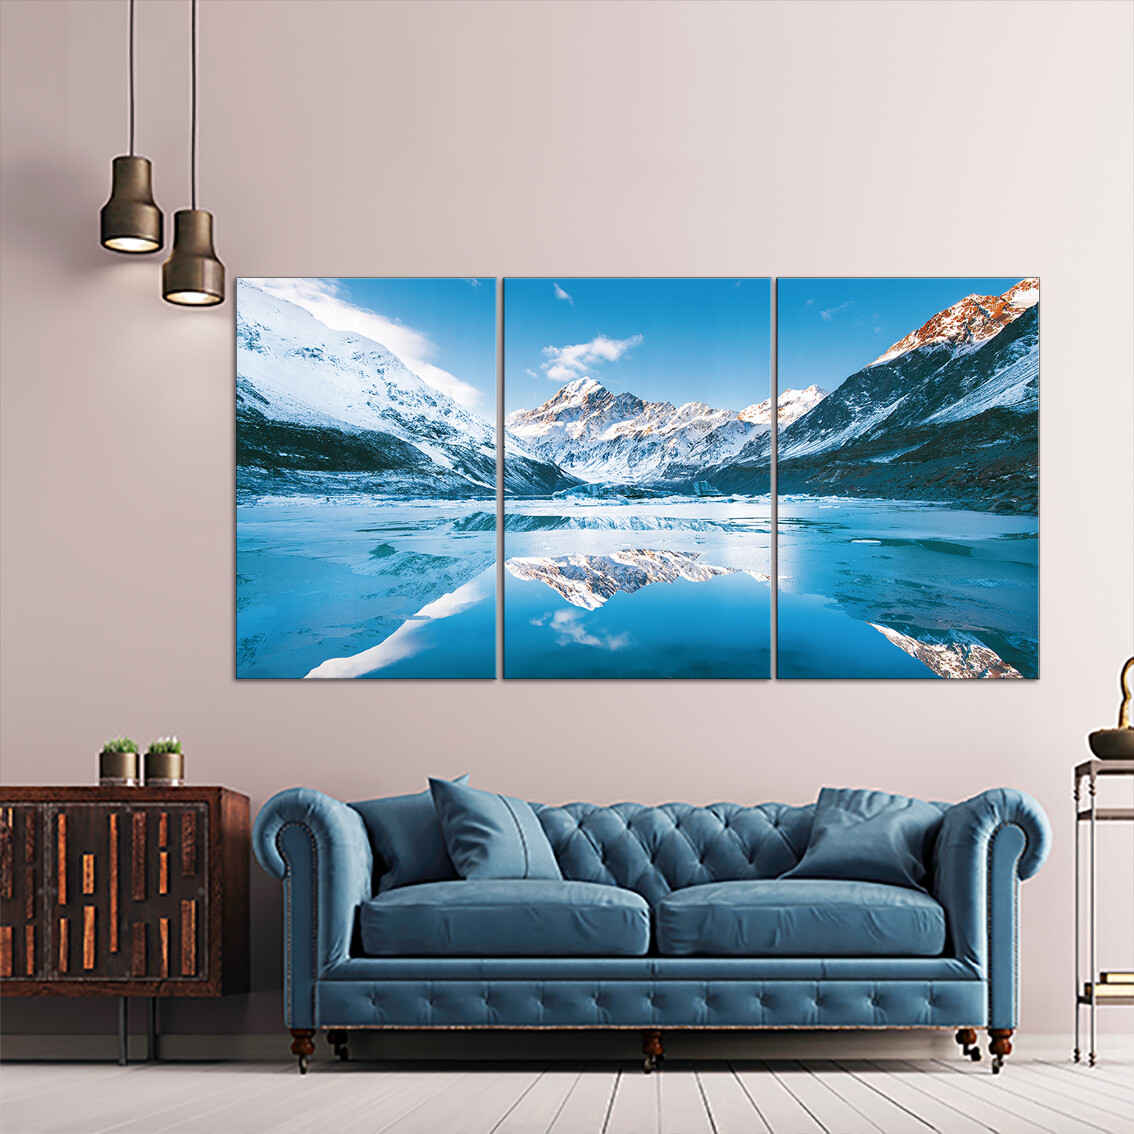 Hooker Lake , New Zealand  - Modern Luxury Wall art Printed on Acrylic Glass - Frameless and Ready to Hang